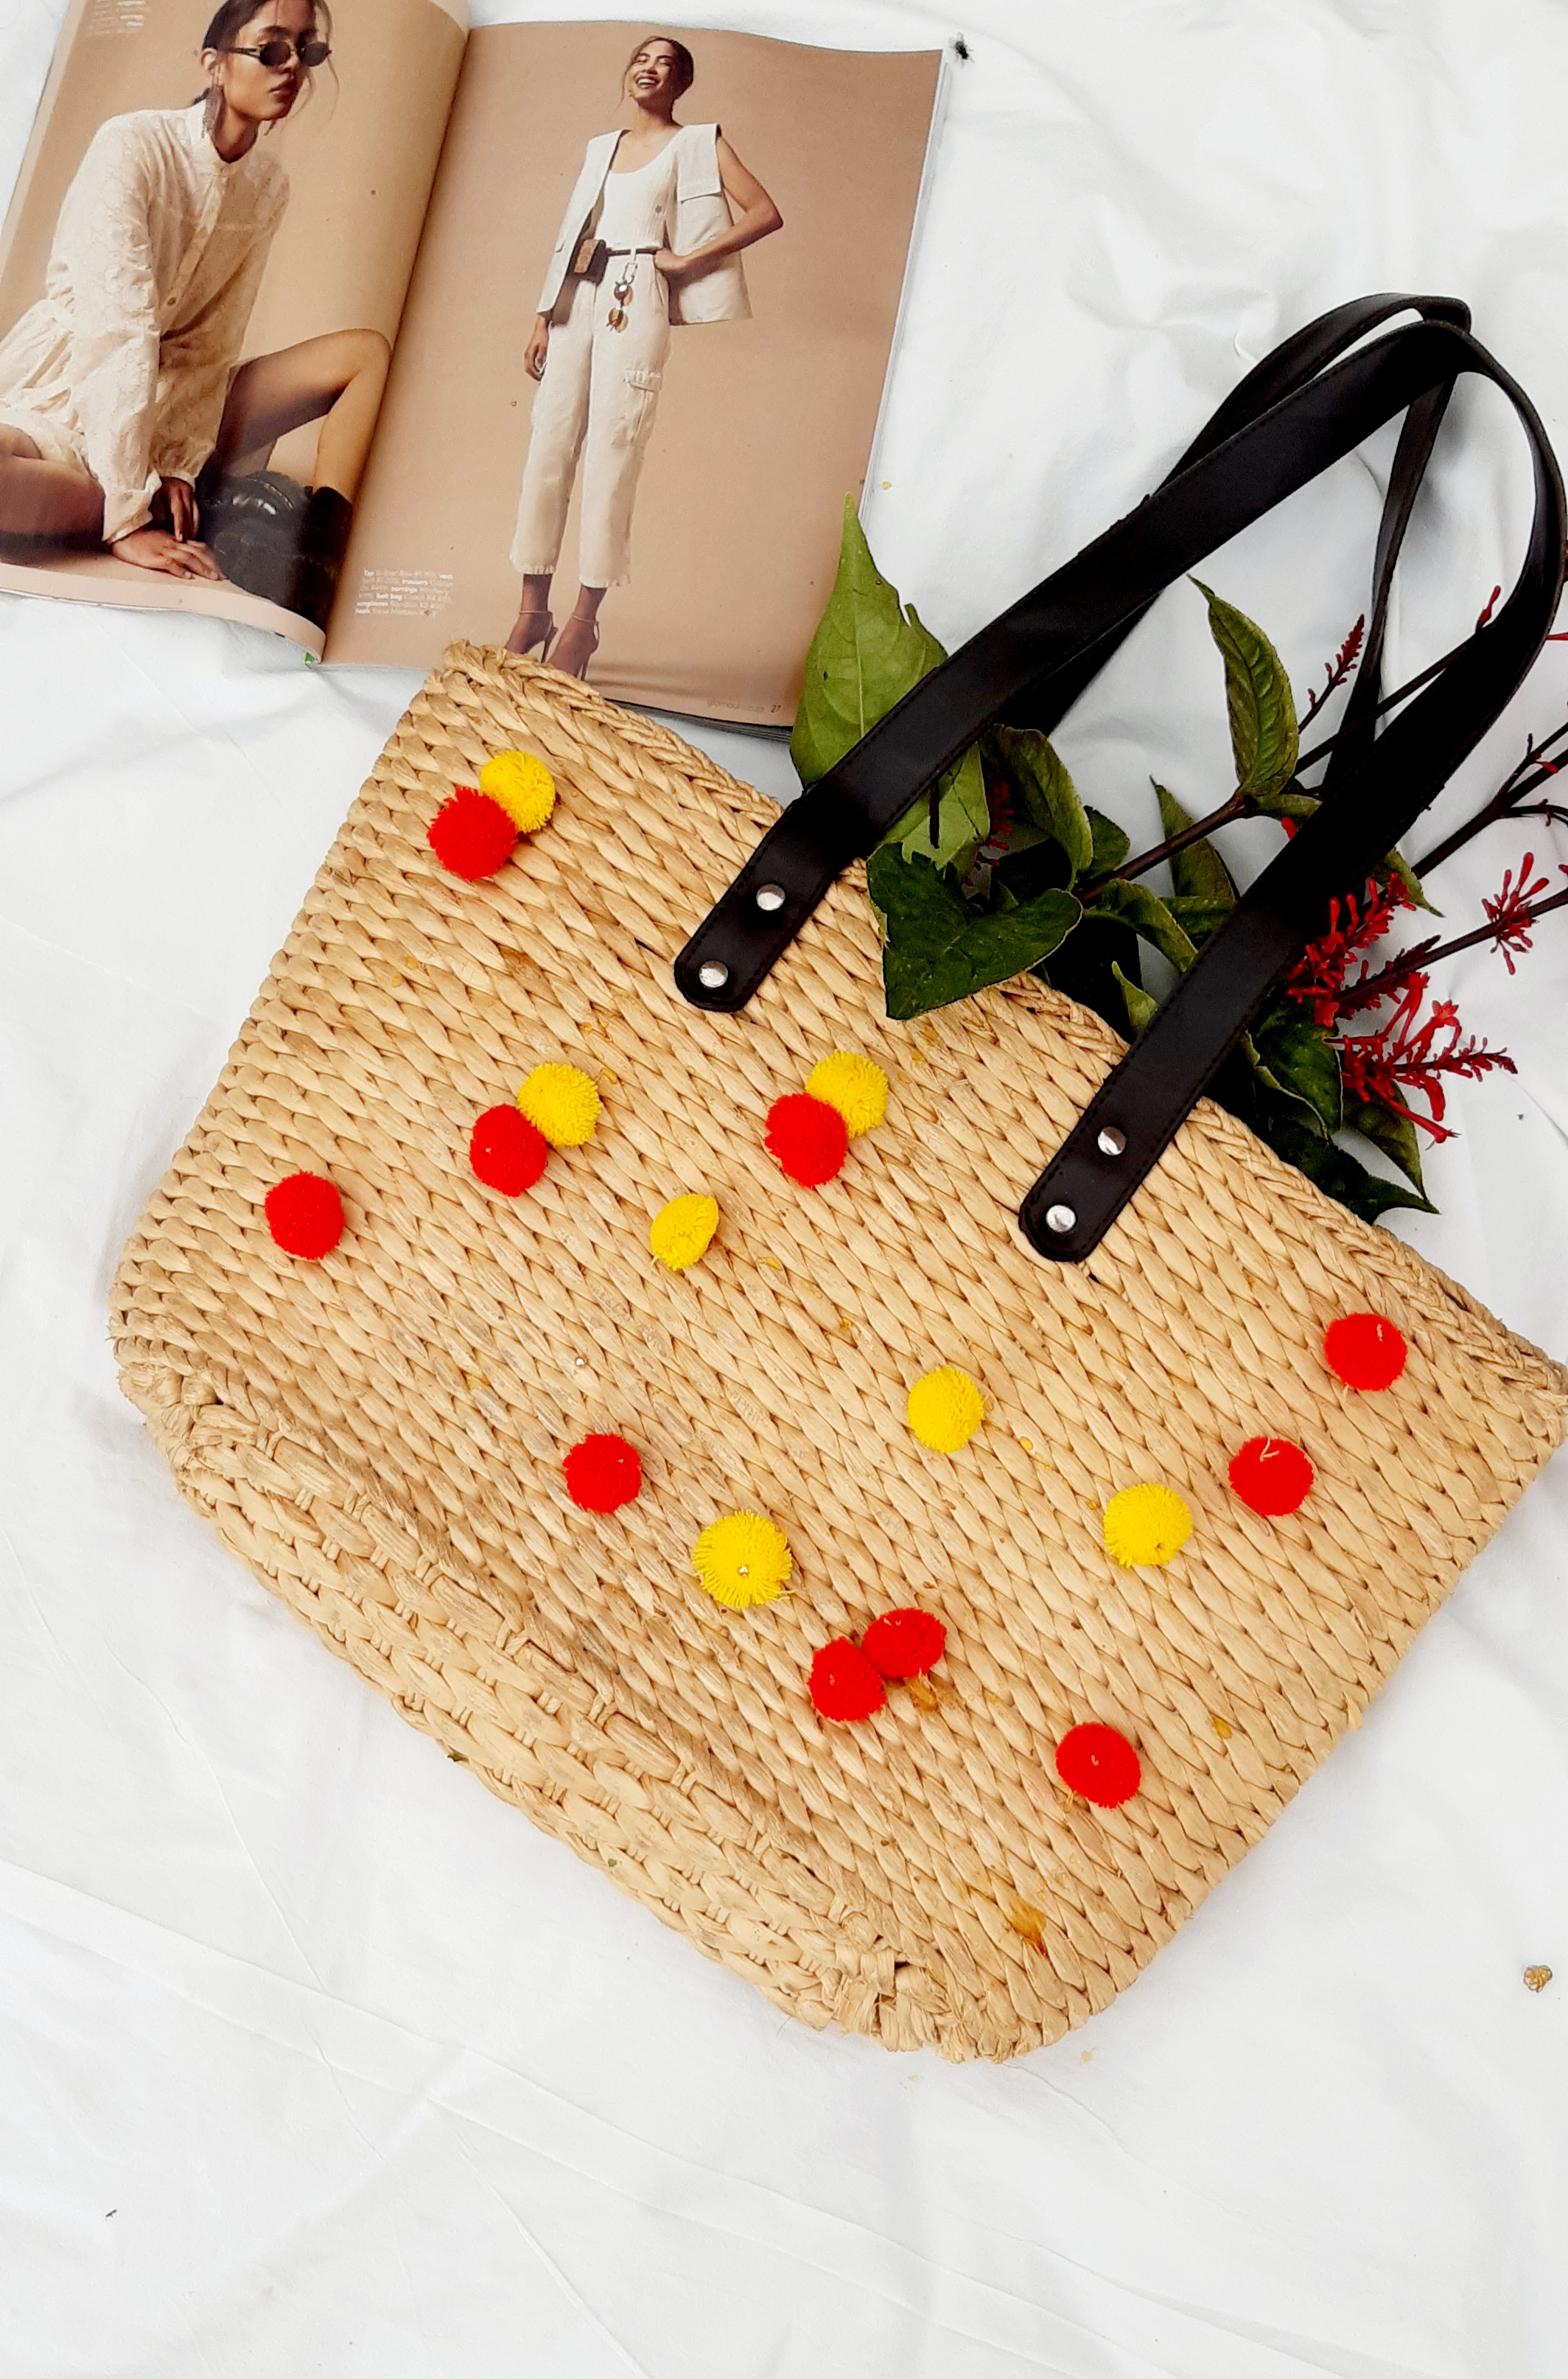 How to zhoosh up your straw bag: Pom Pom style.